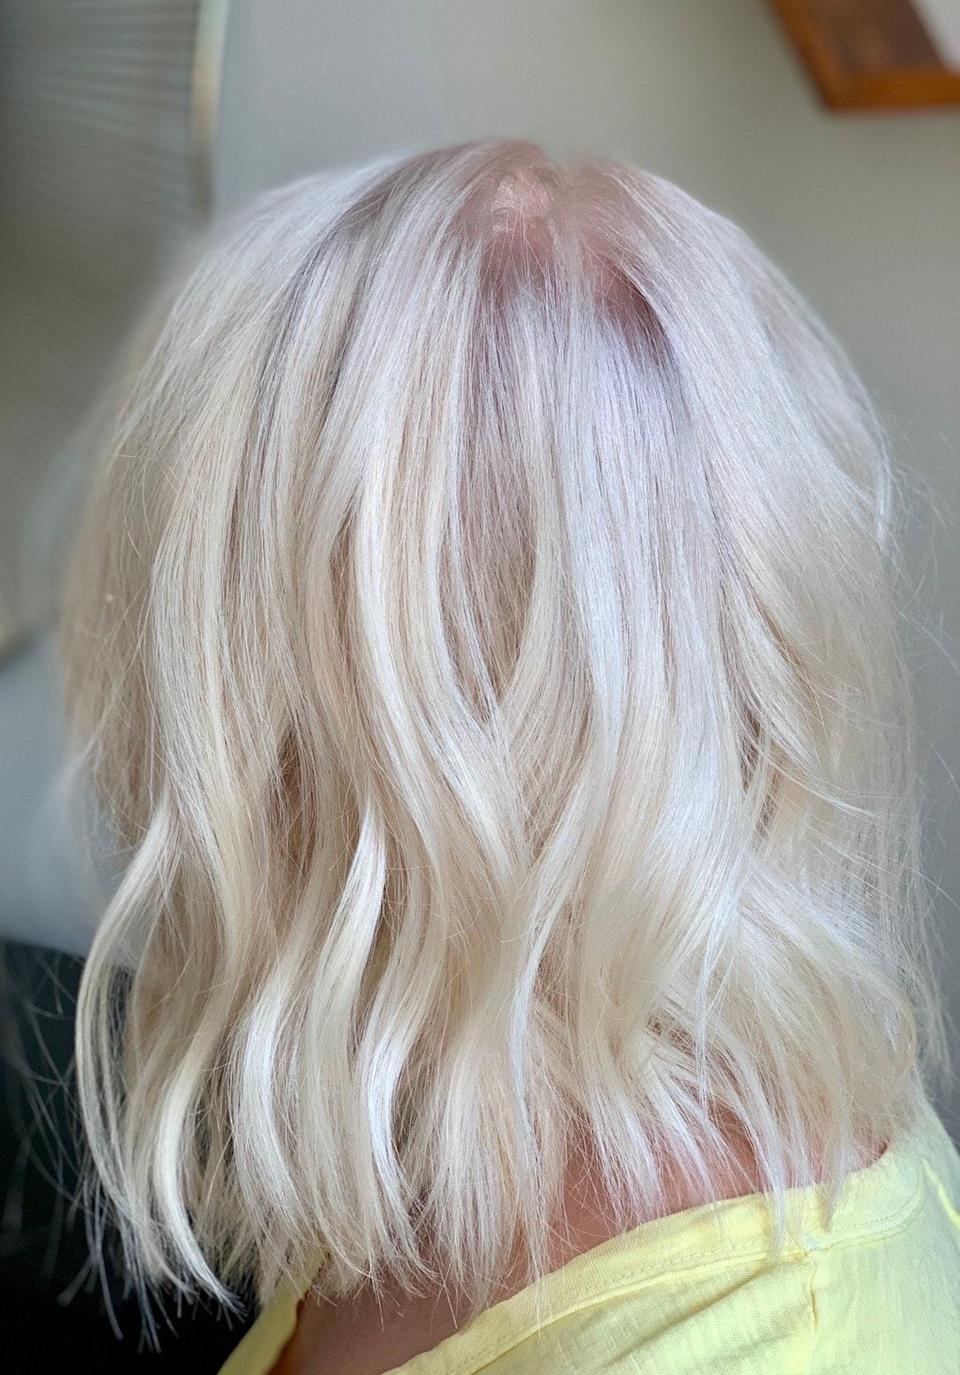 "While fall usually means warmer tones, get a jump on winter weather by going ice queen platinum. ""It's so fun to cool down a summer blonde for winter,"" says <a href=""https://www.instagram.com/laurengrummel/"" rel=""nofollow noopener"" target=""_blank"" data-ylk=""slk:Lauren Grummel"" class=""link rapid-noclick-resp"">Lauren Grummel</a>, a hairstylist in New York. ""Make sure to get a fresh trim on the ends if you're super blonde, it always makes the blonde fresher and even brighter looking."""